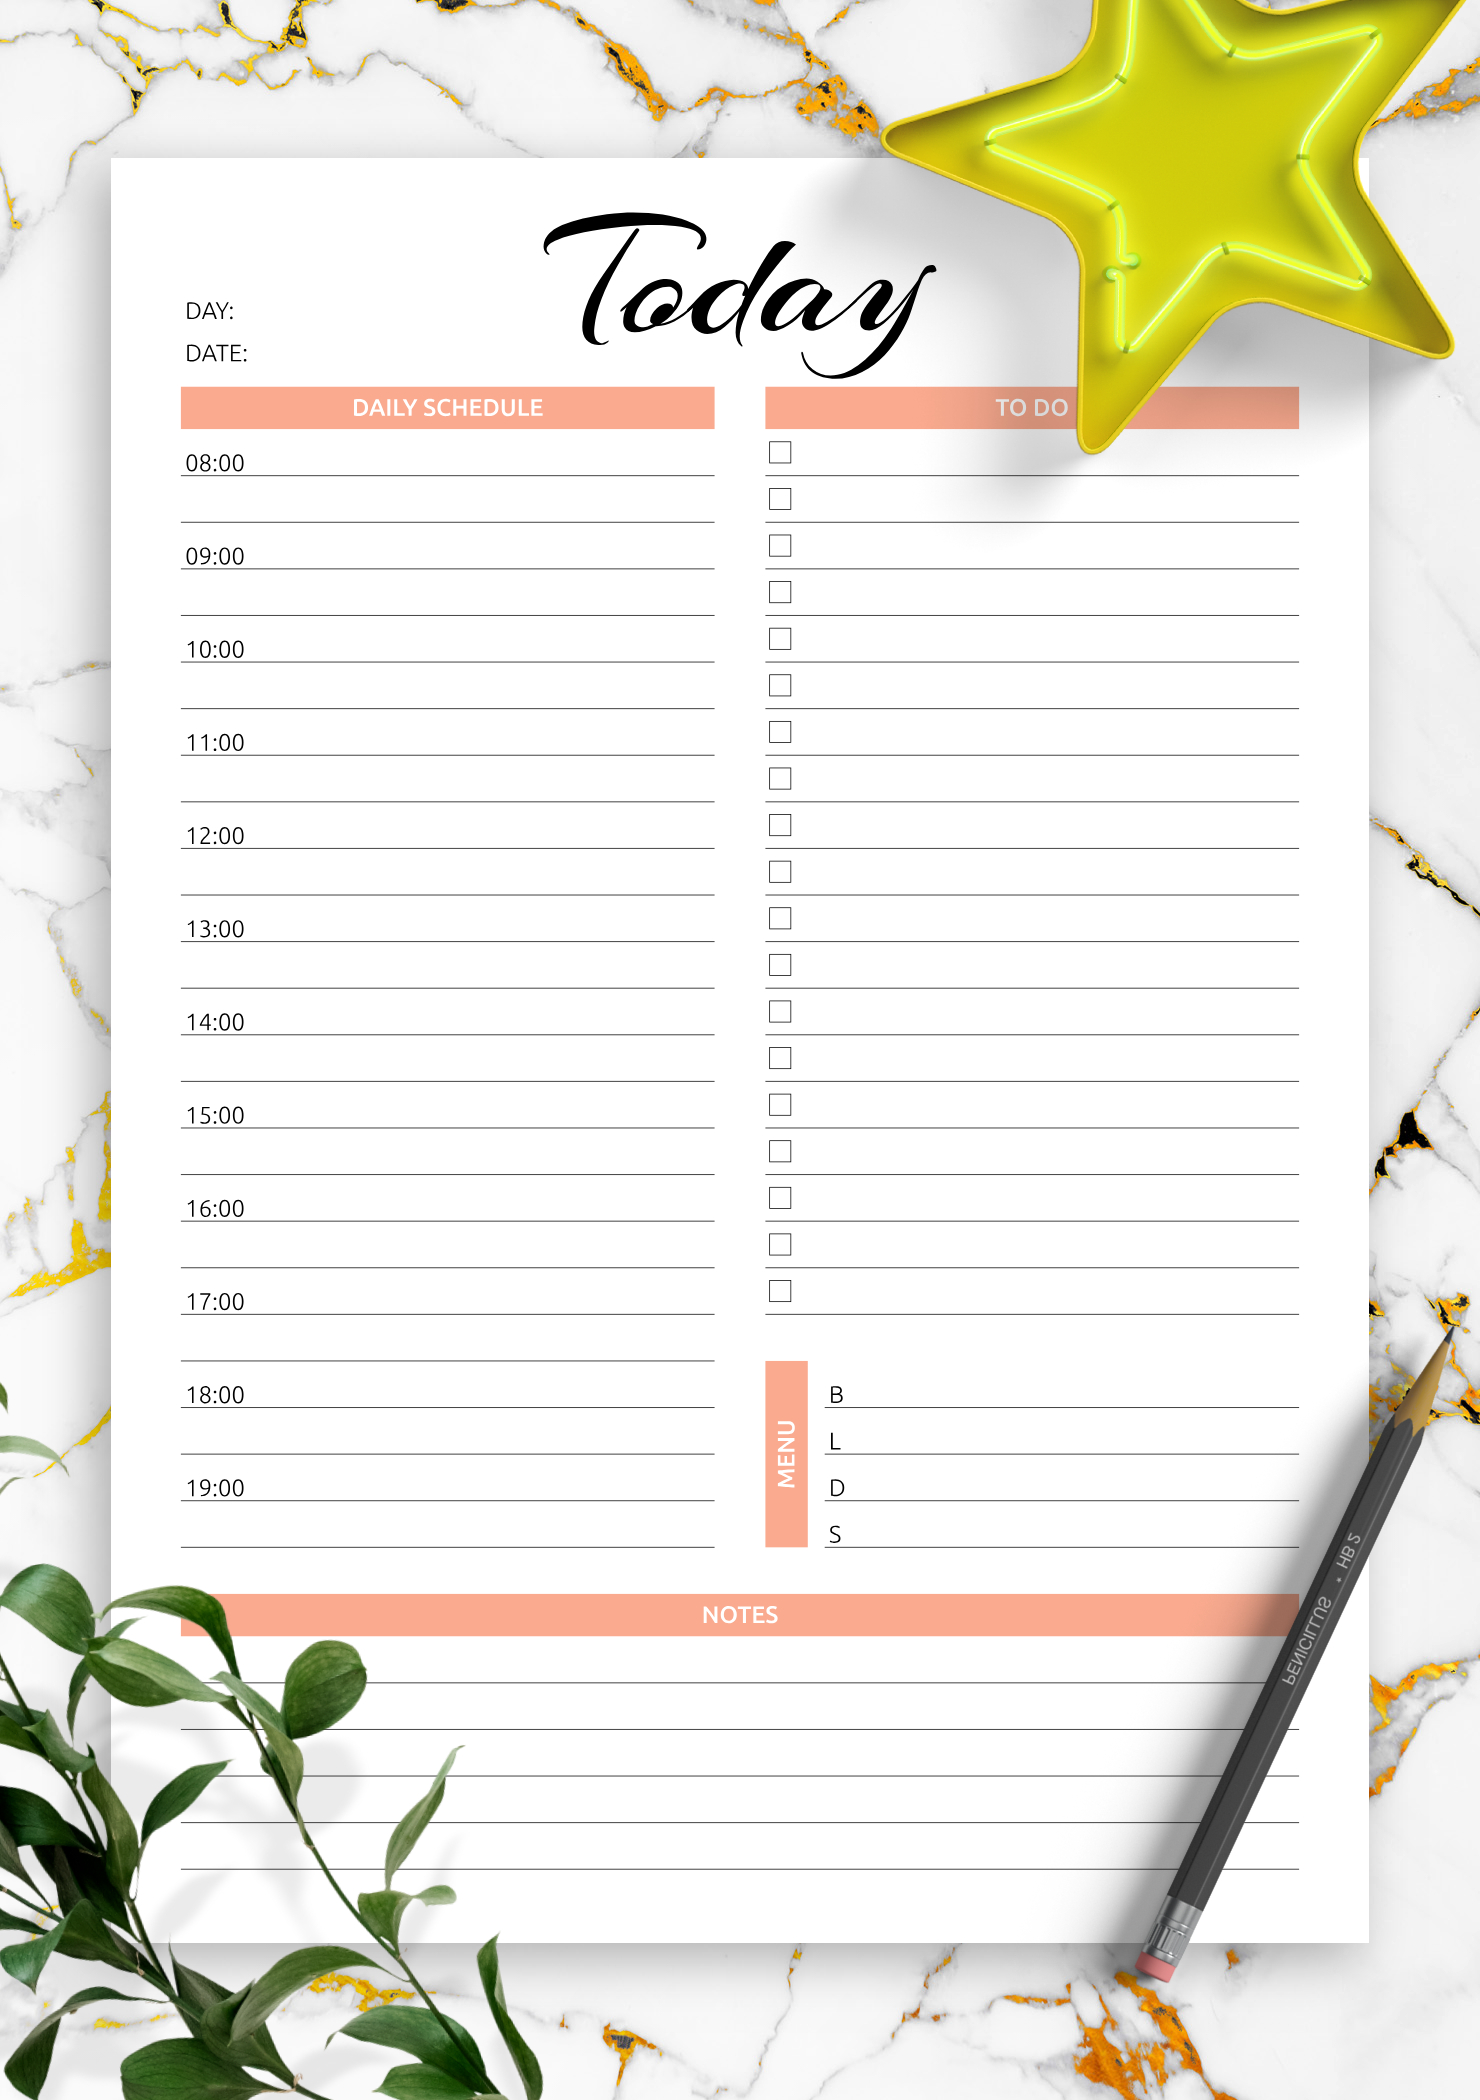 Download Printable Today Hourly Planner Pdf in Free Printable Hourly Calendar